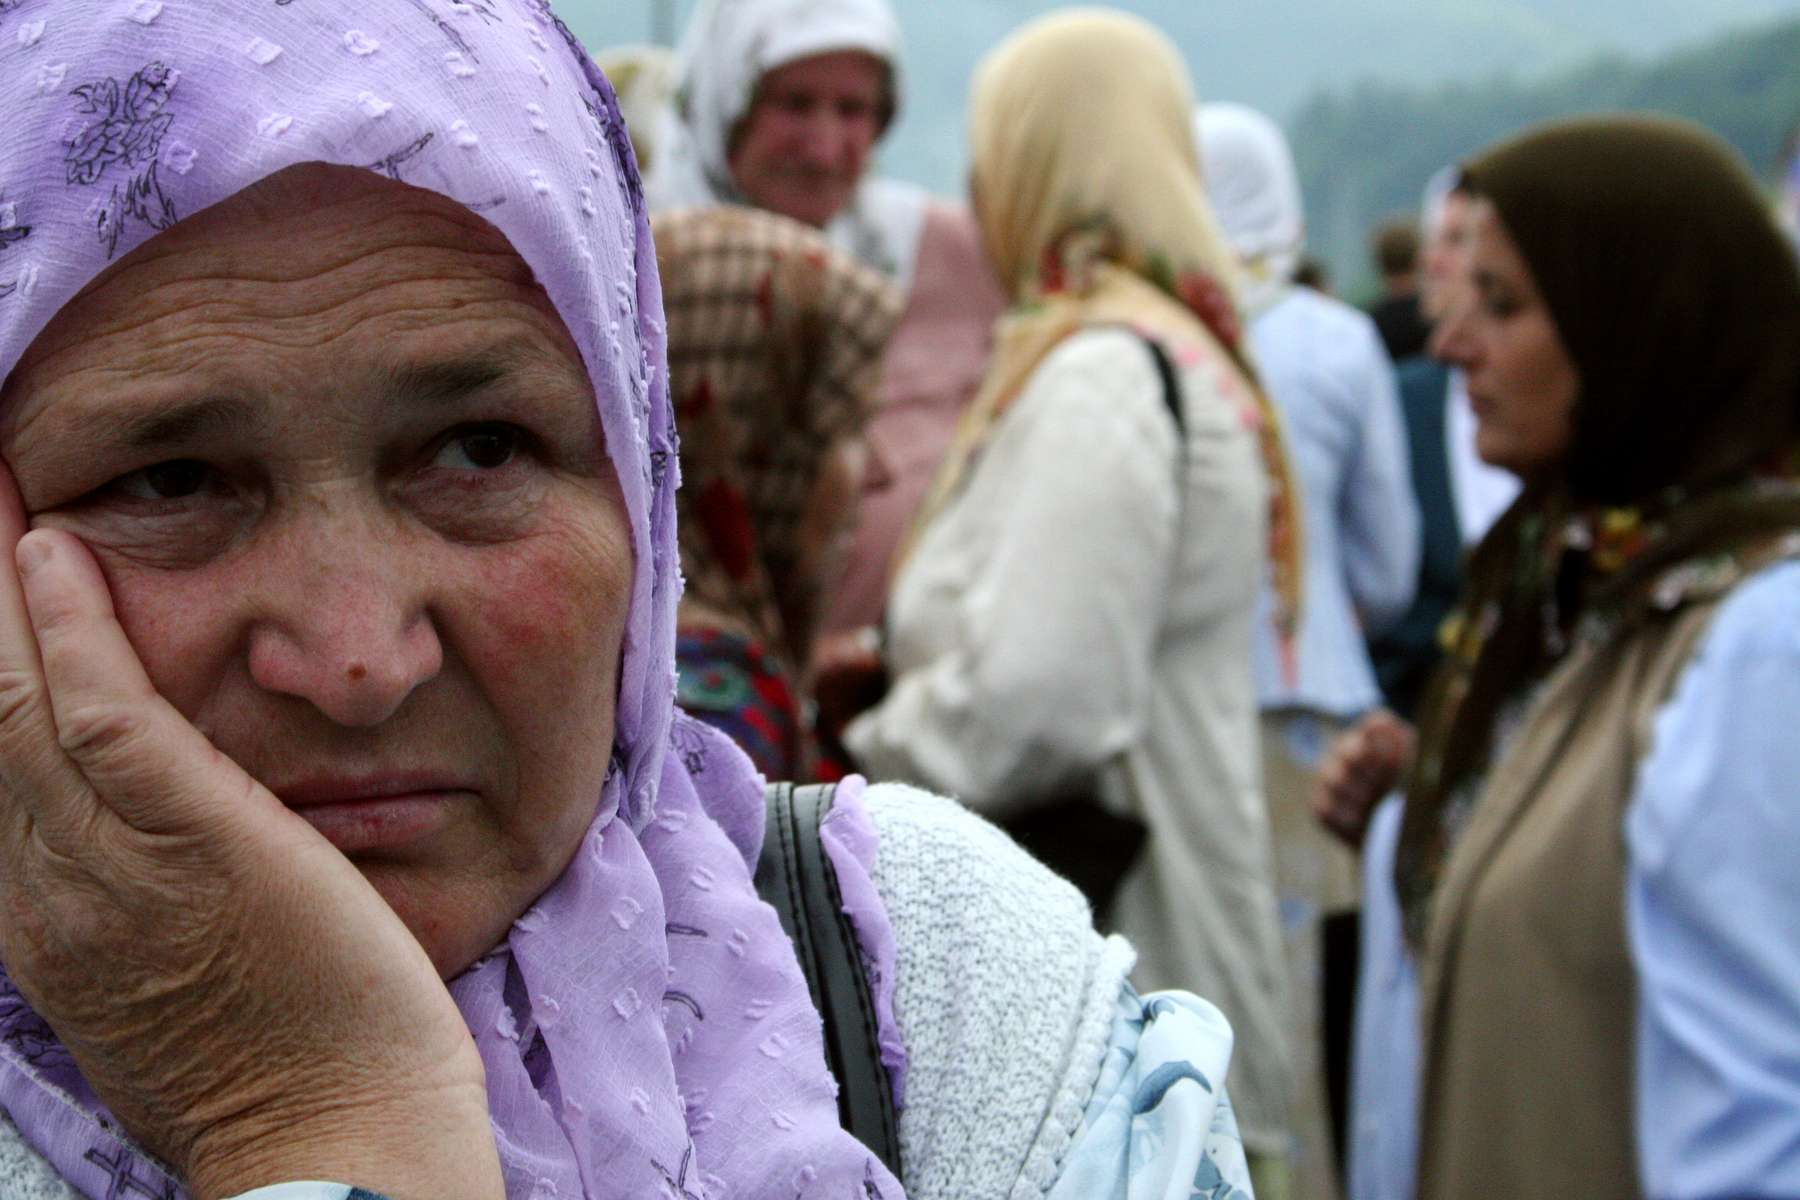 Muslim widows wait for the arrival of the remains of more than 600 men and boys killed at Srebrenica by Serb forces in 1995. The remains will be buried on July 11, as part of the commemoration ceremonies marking the tenth annivesary of the worst genocide in Europe since World War II. More than 1300 remains have already been buried at the site, in the village of Potocari near Srebrenica. Thousands of other remains have yet to be exhumed from mass graves and identified.